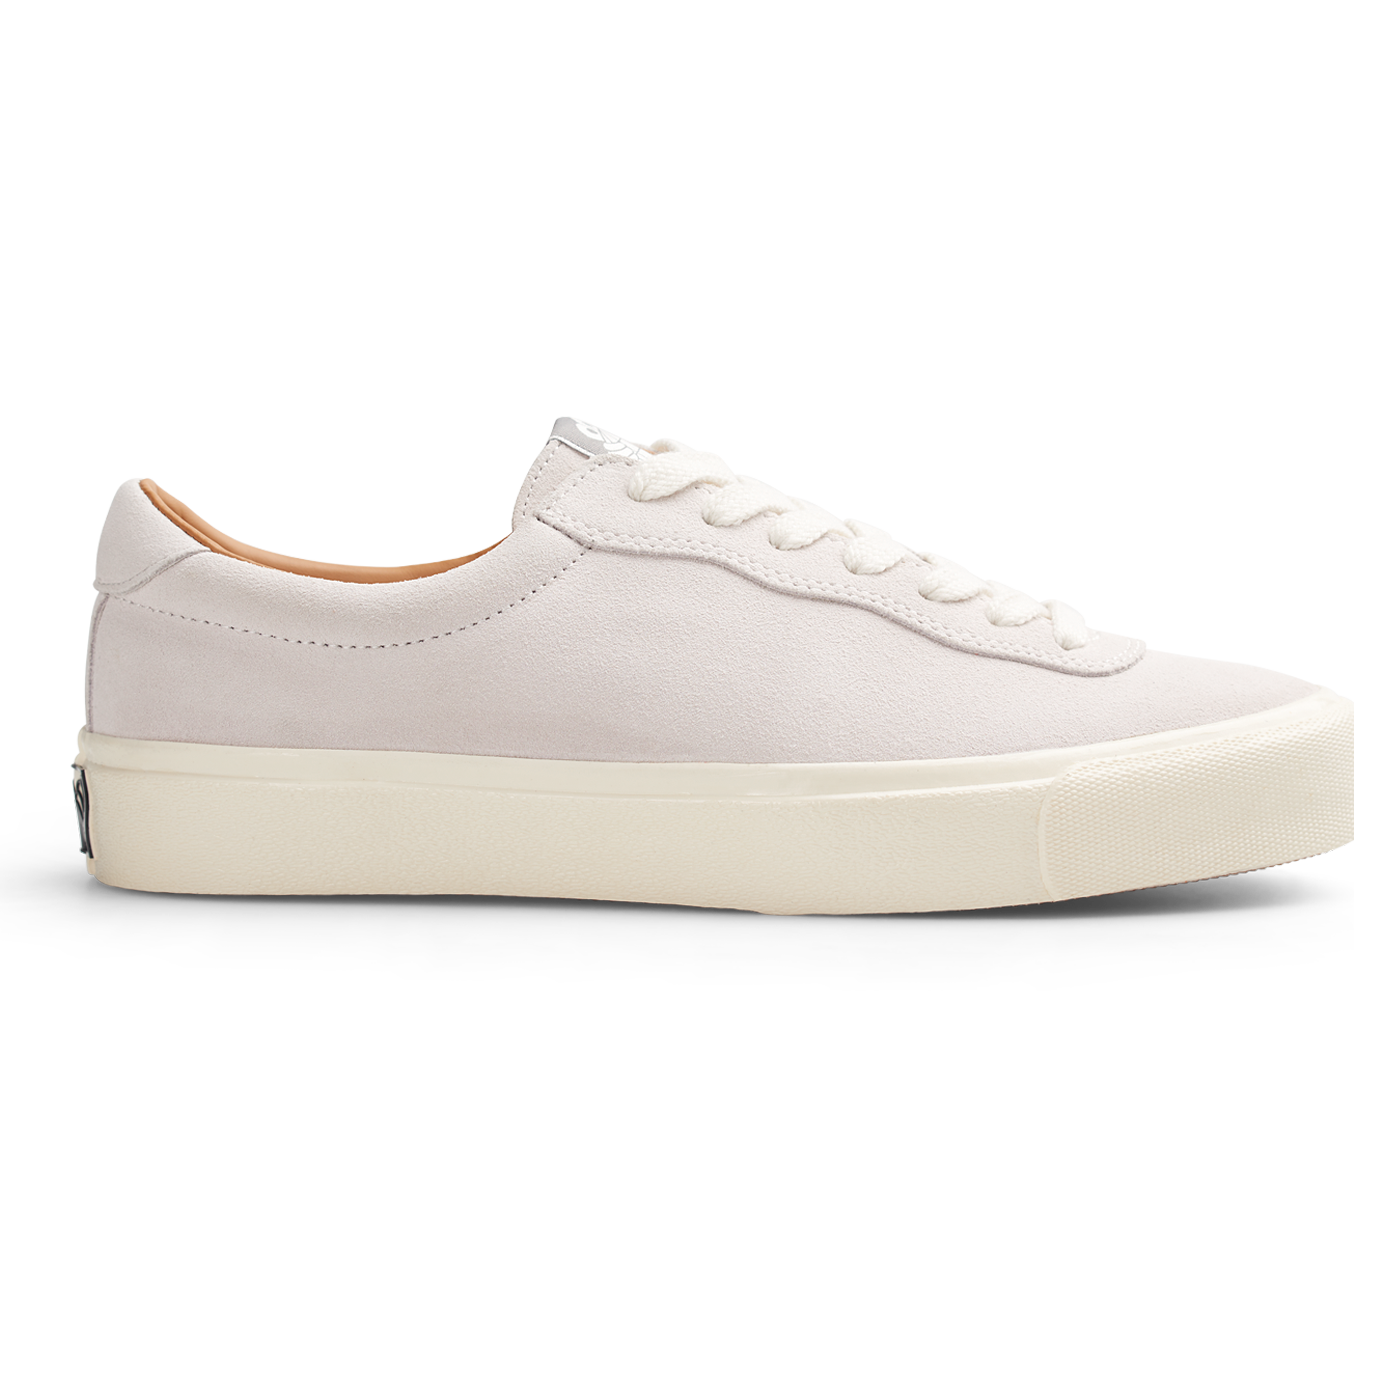 Vm001 Lo Suede Whi Whi Side